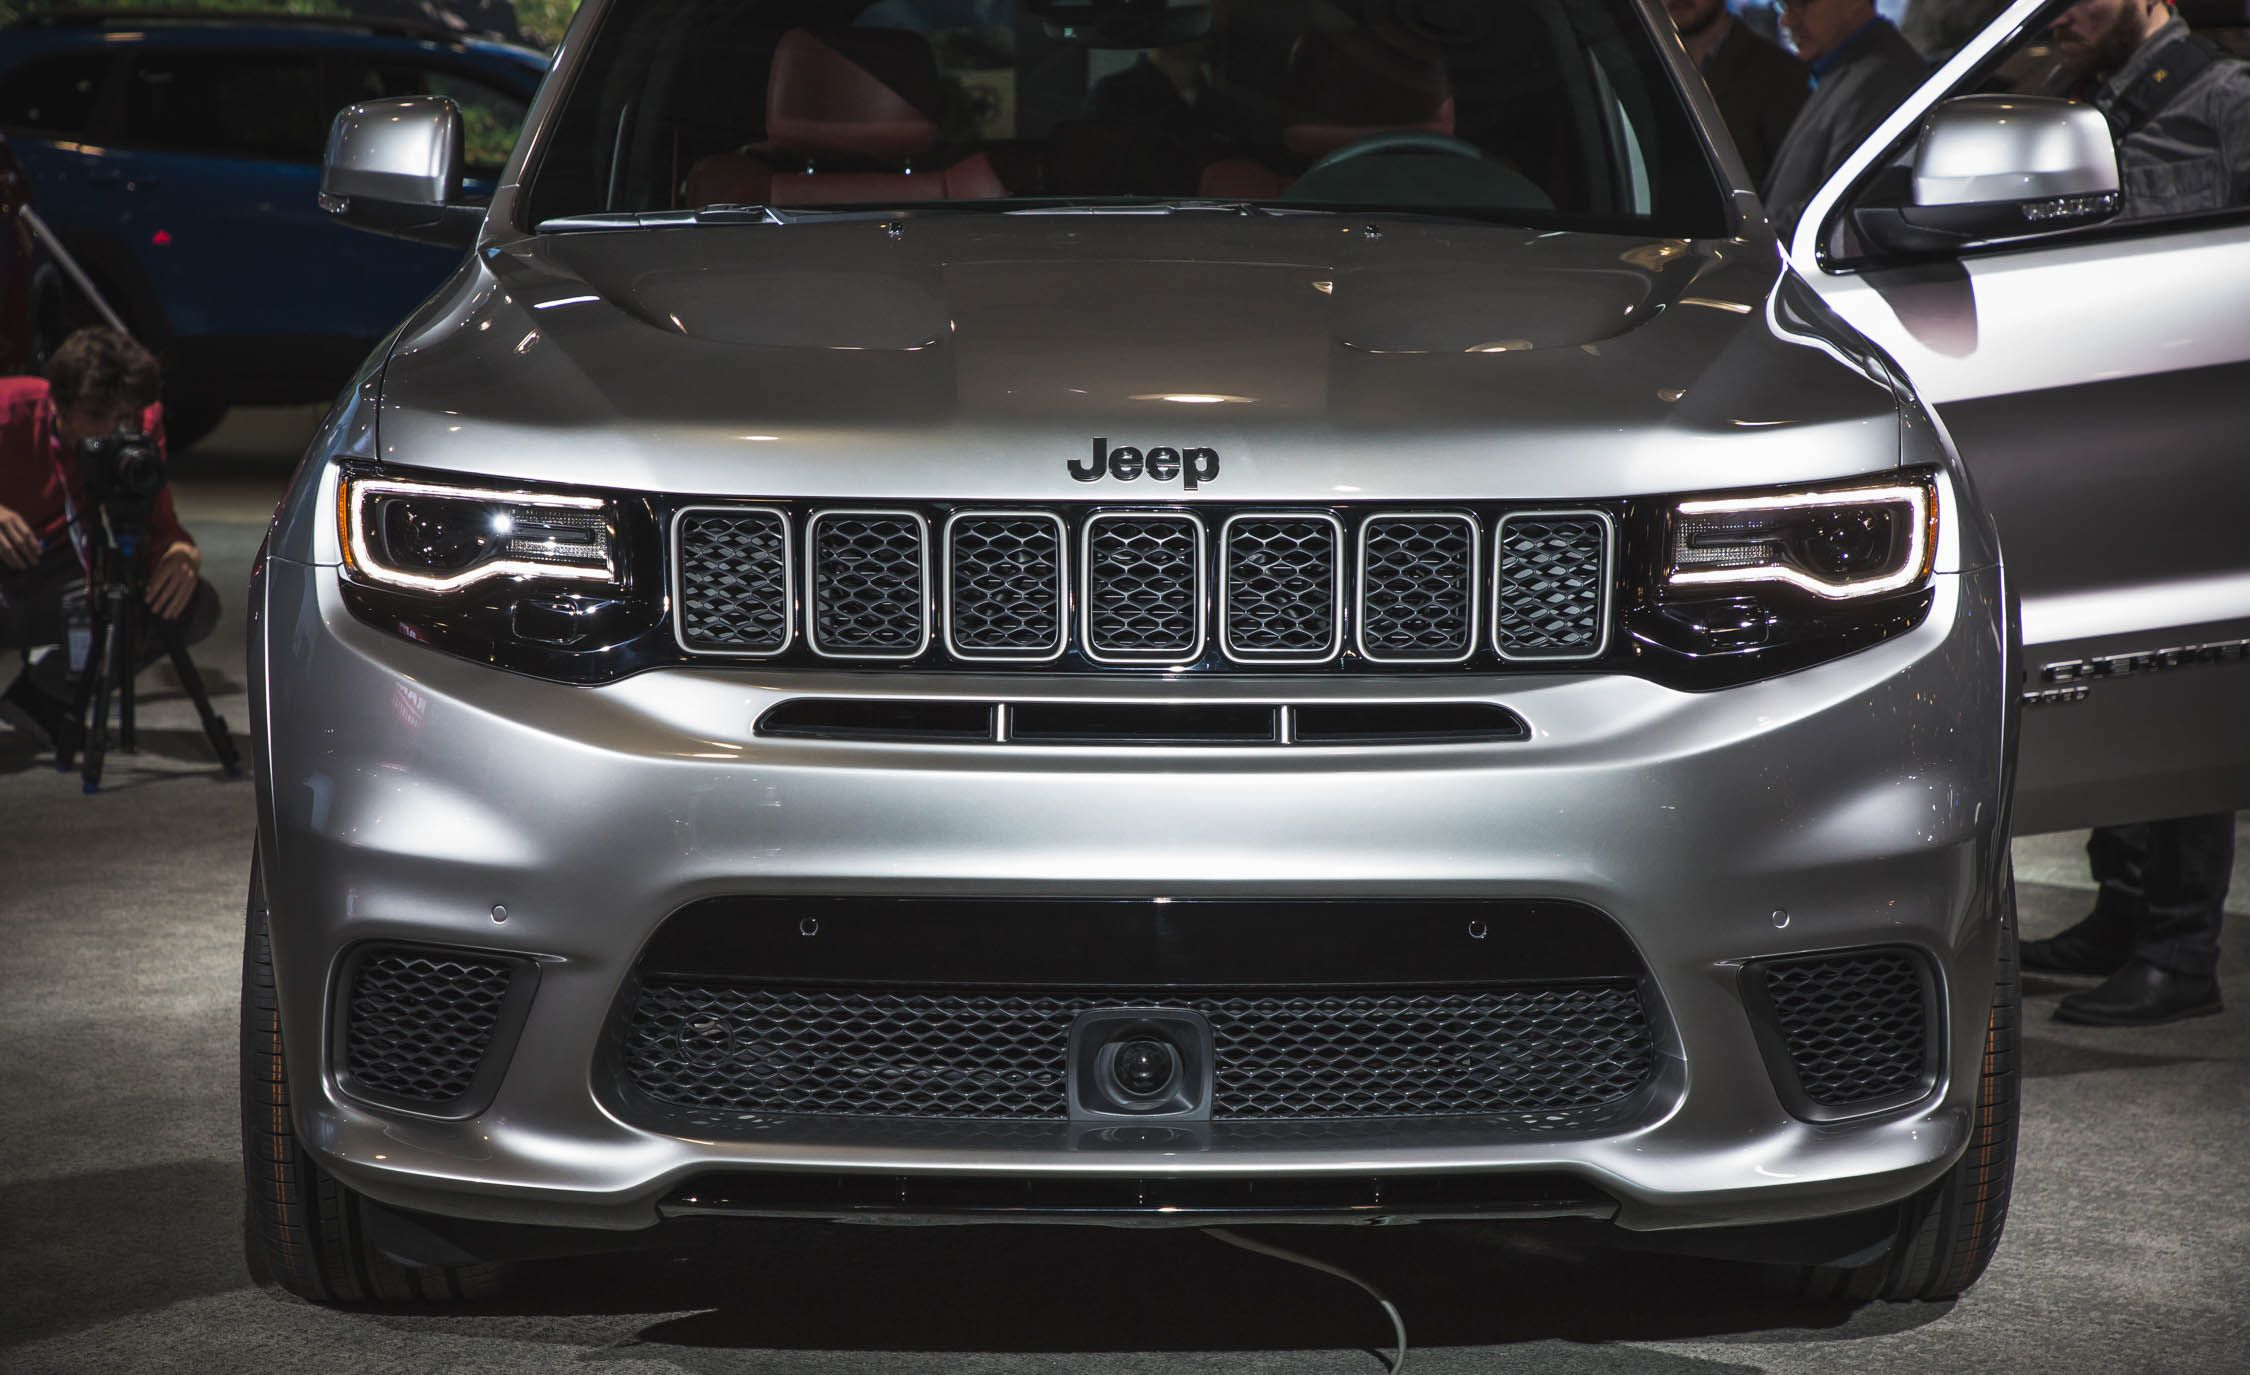 2018 jeep fast. Fine Jeep 2018 Jeep Grand Cherokee Trackhawk Pictures  Photo Gallery Car And Driver And Jeep Fast